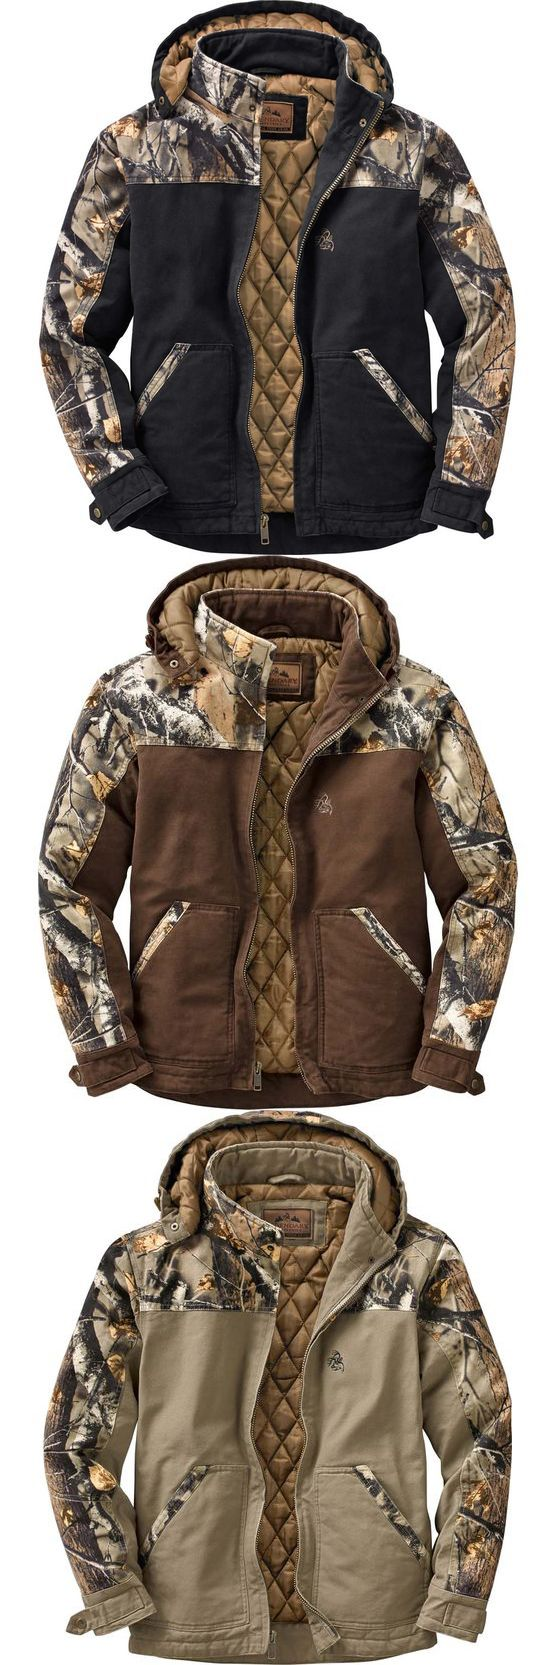 Work. Hunt. Play. This jacket can handle it all.  And it's on sale for a limited time!